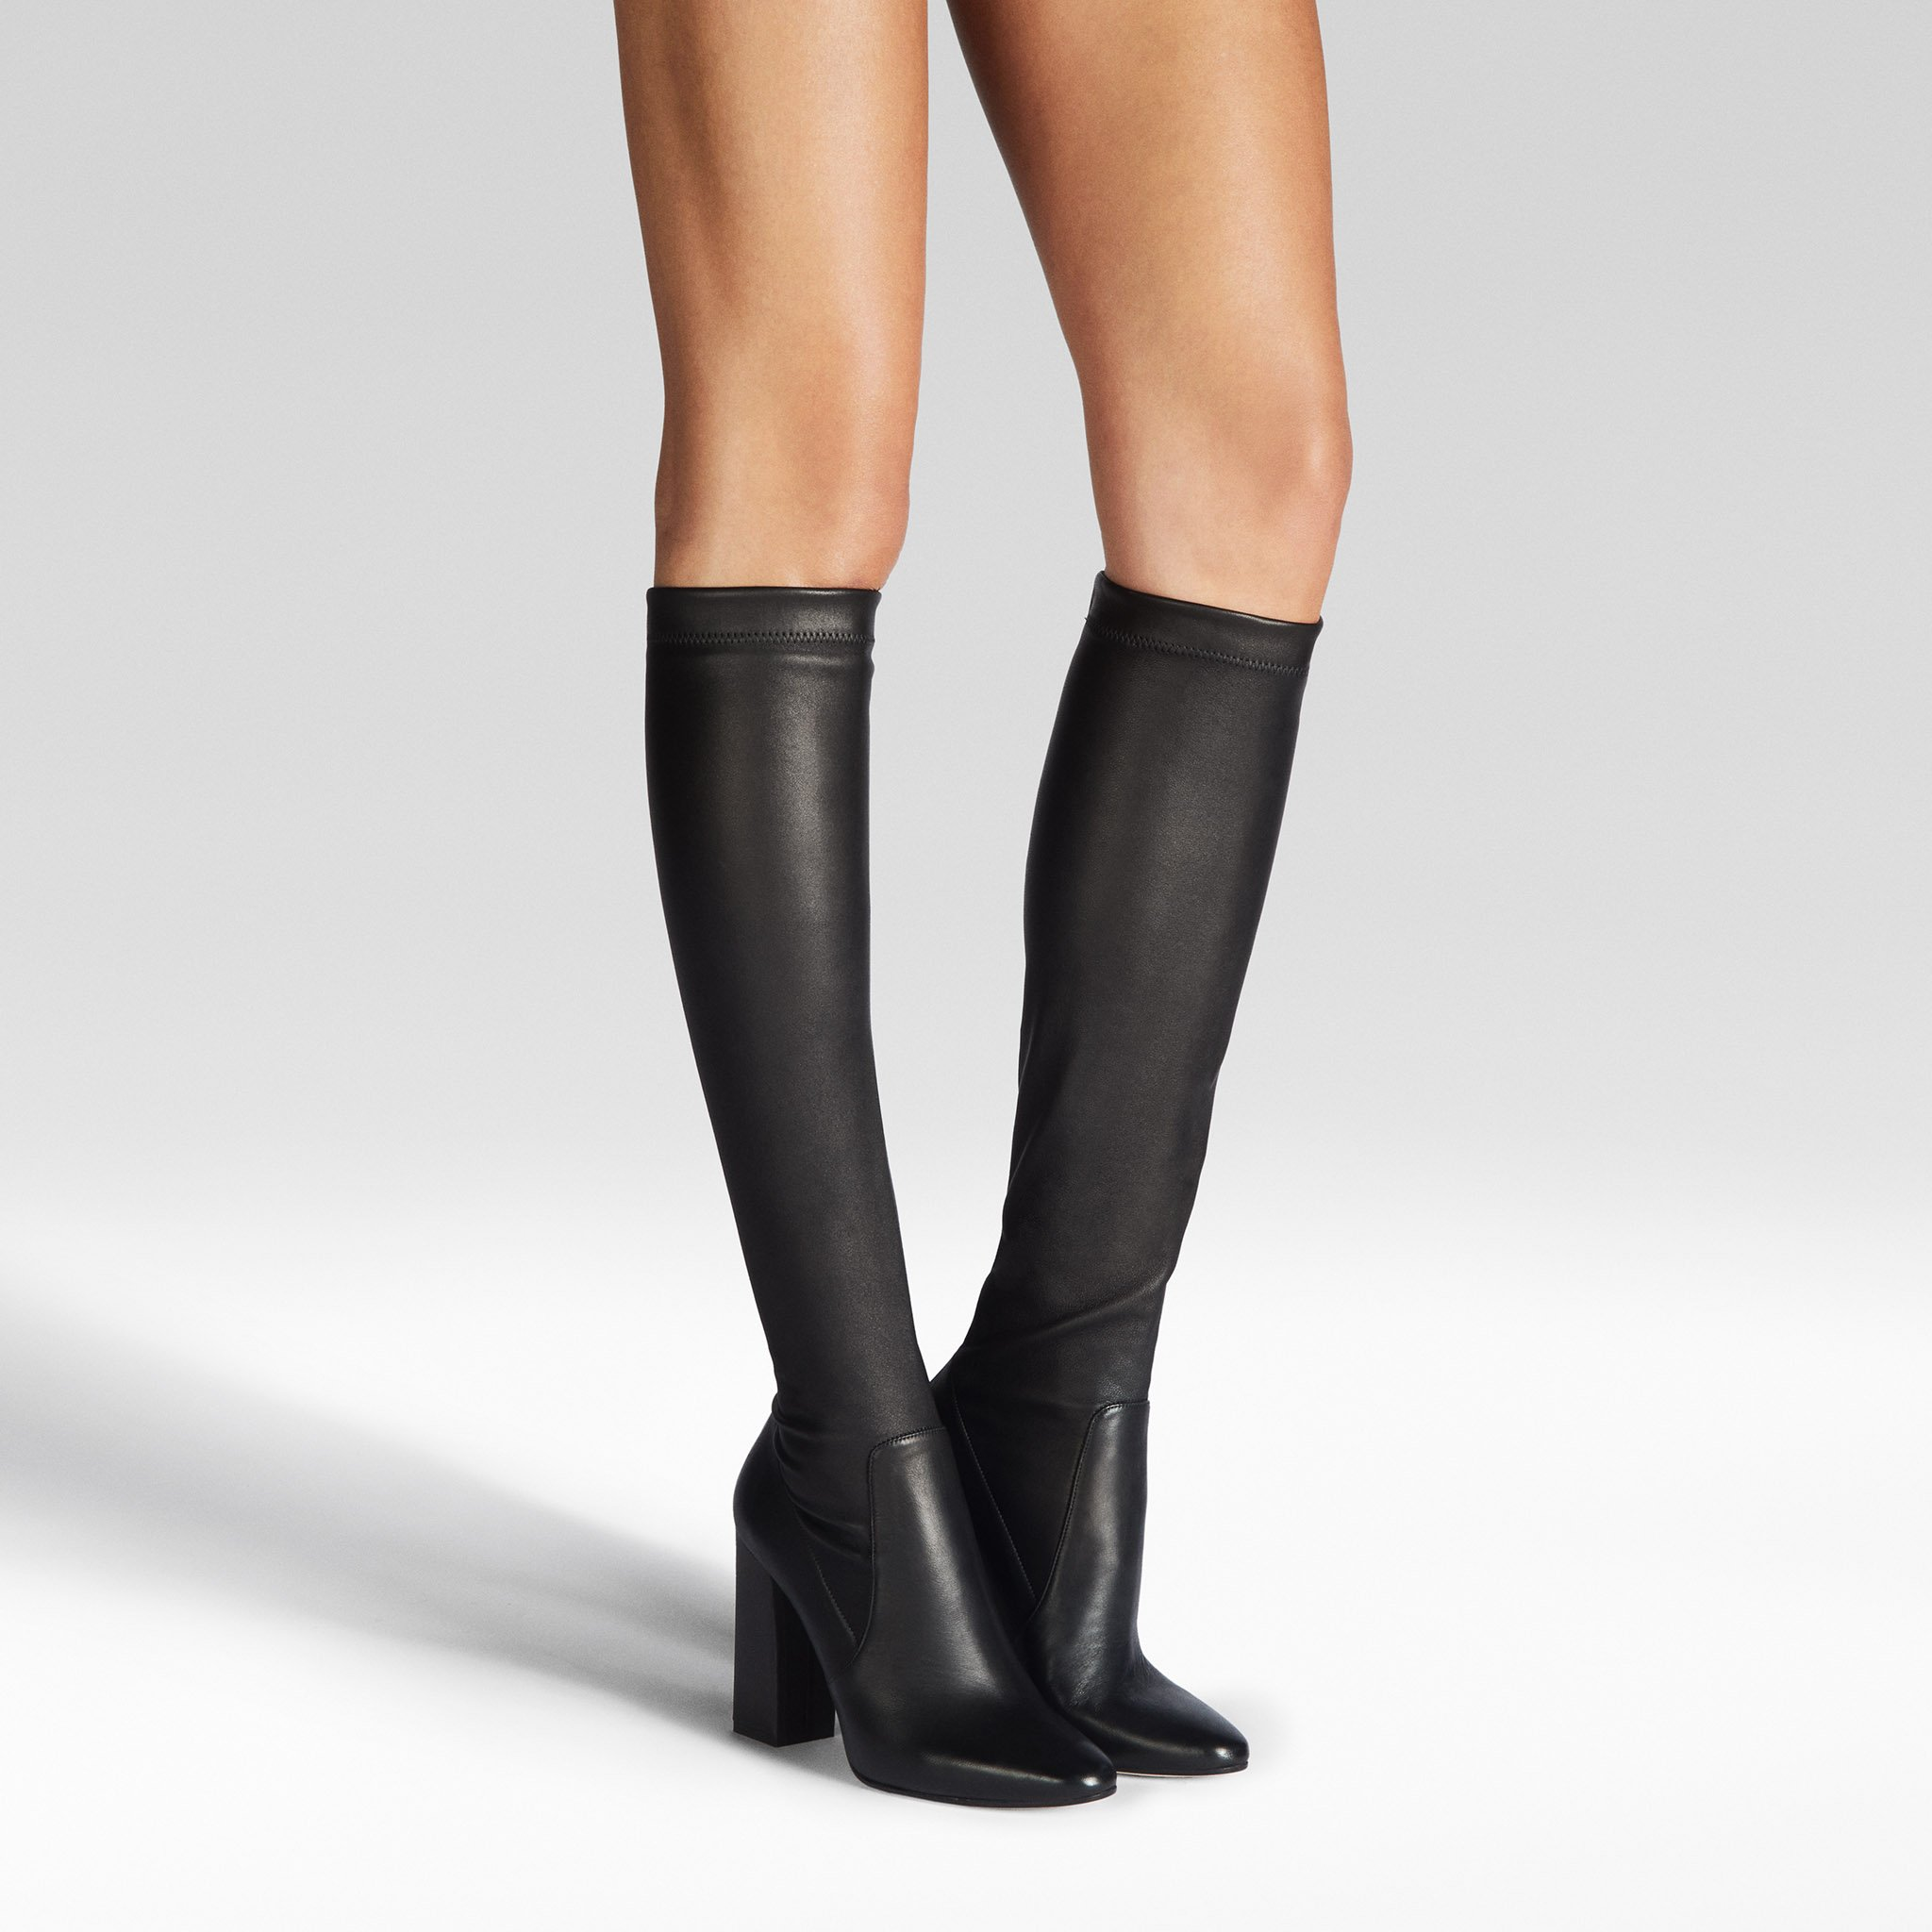 Tamara Mellon Helmut knee high stretch nappa leather boots